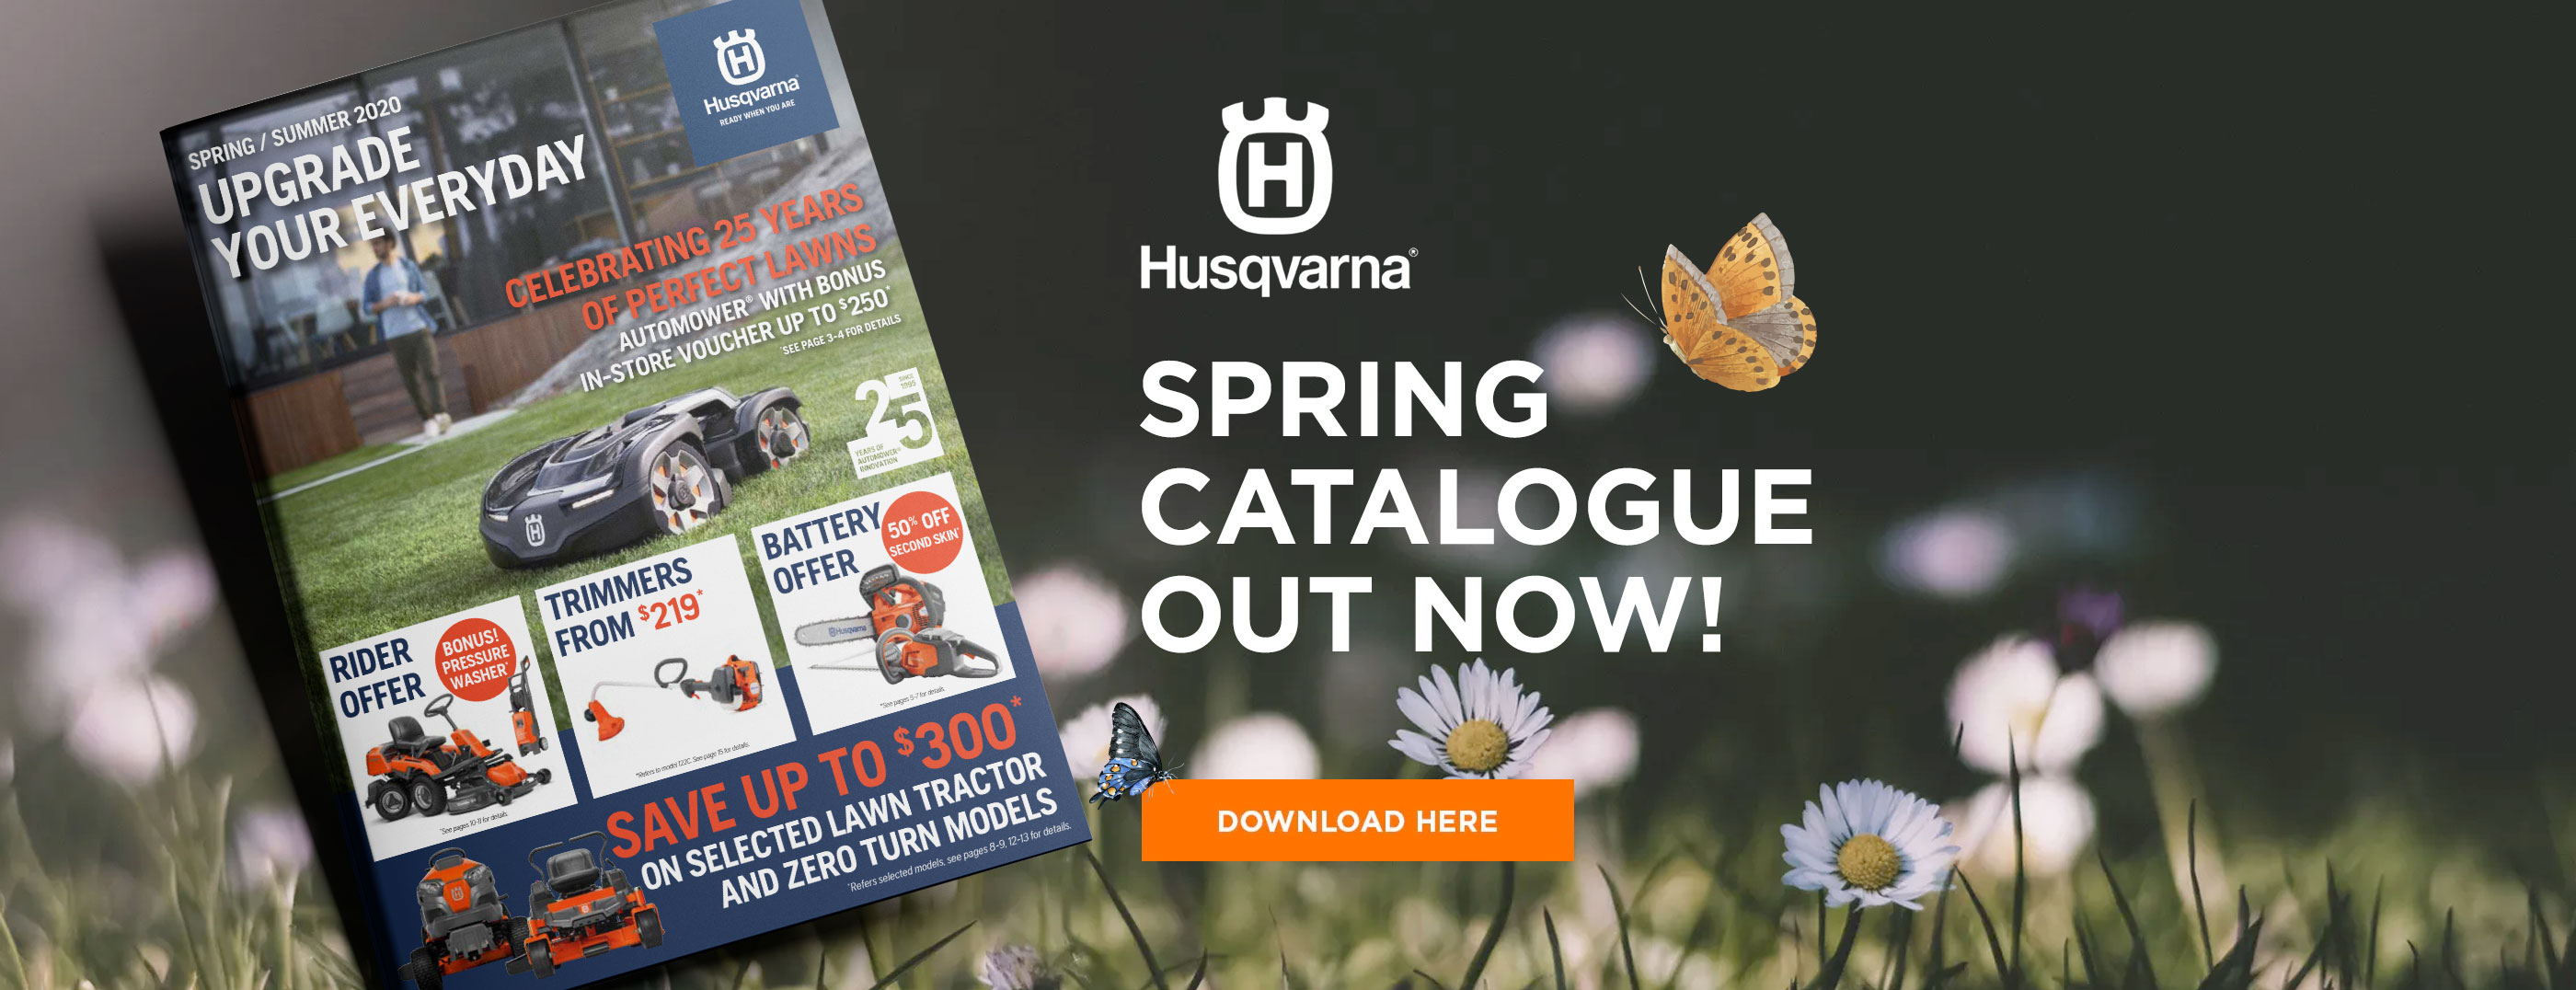 Spring Catalogue